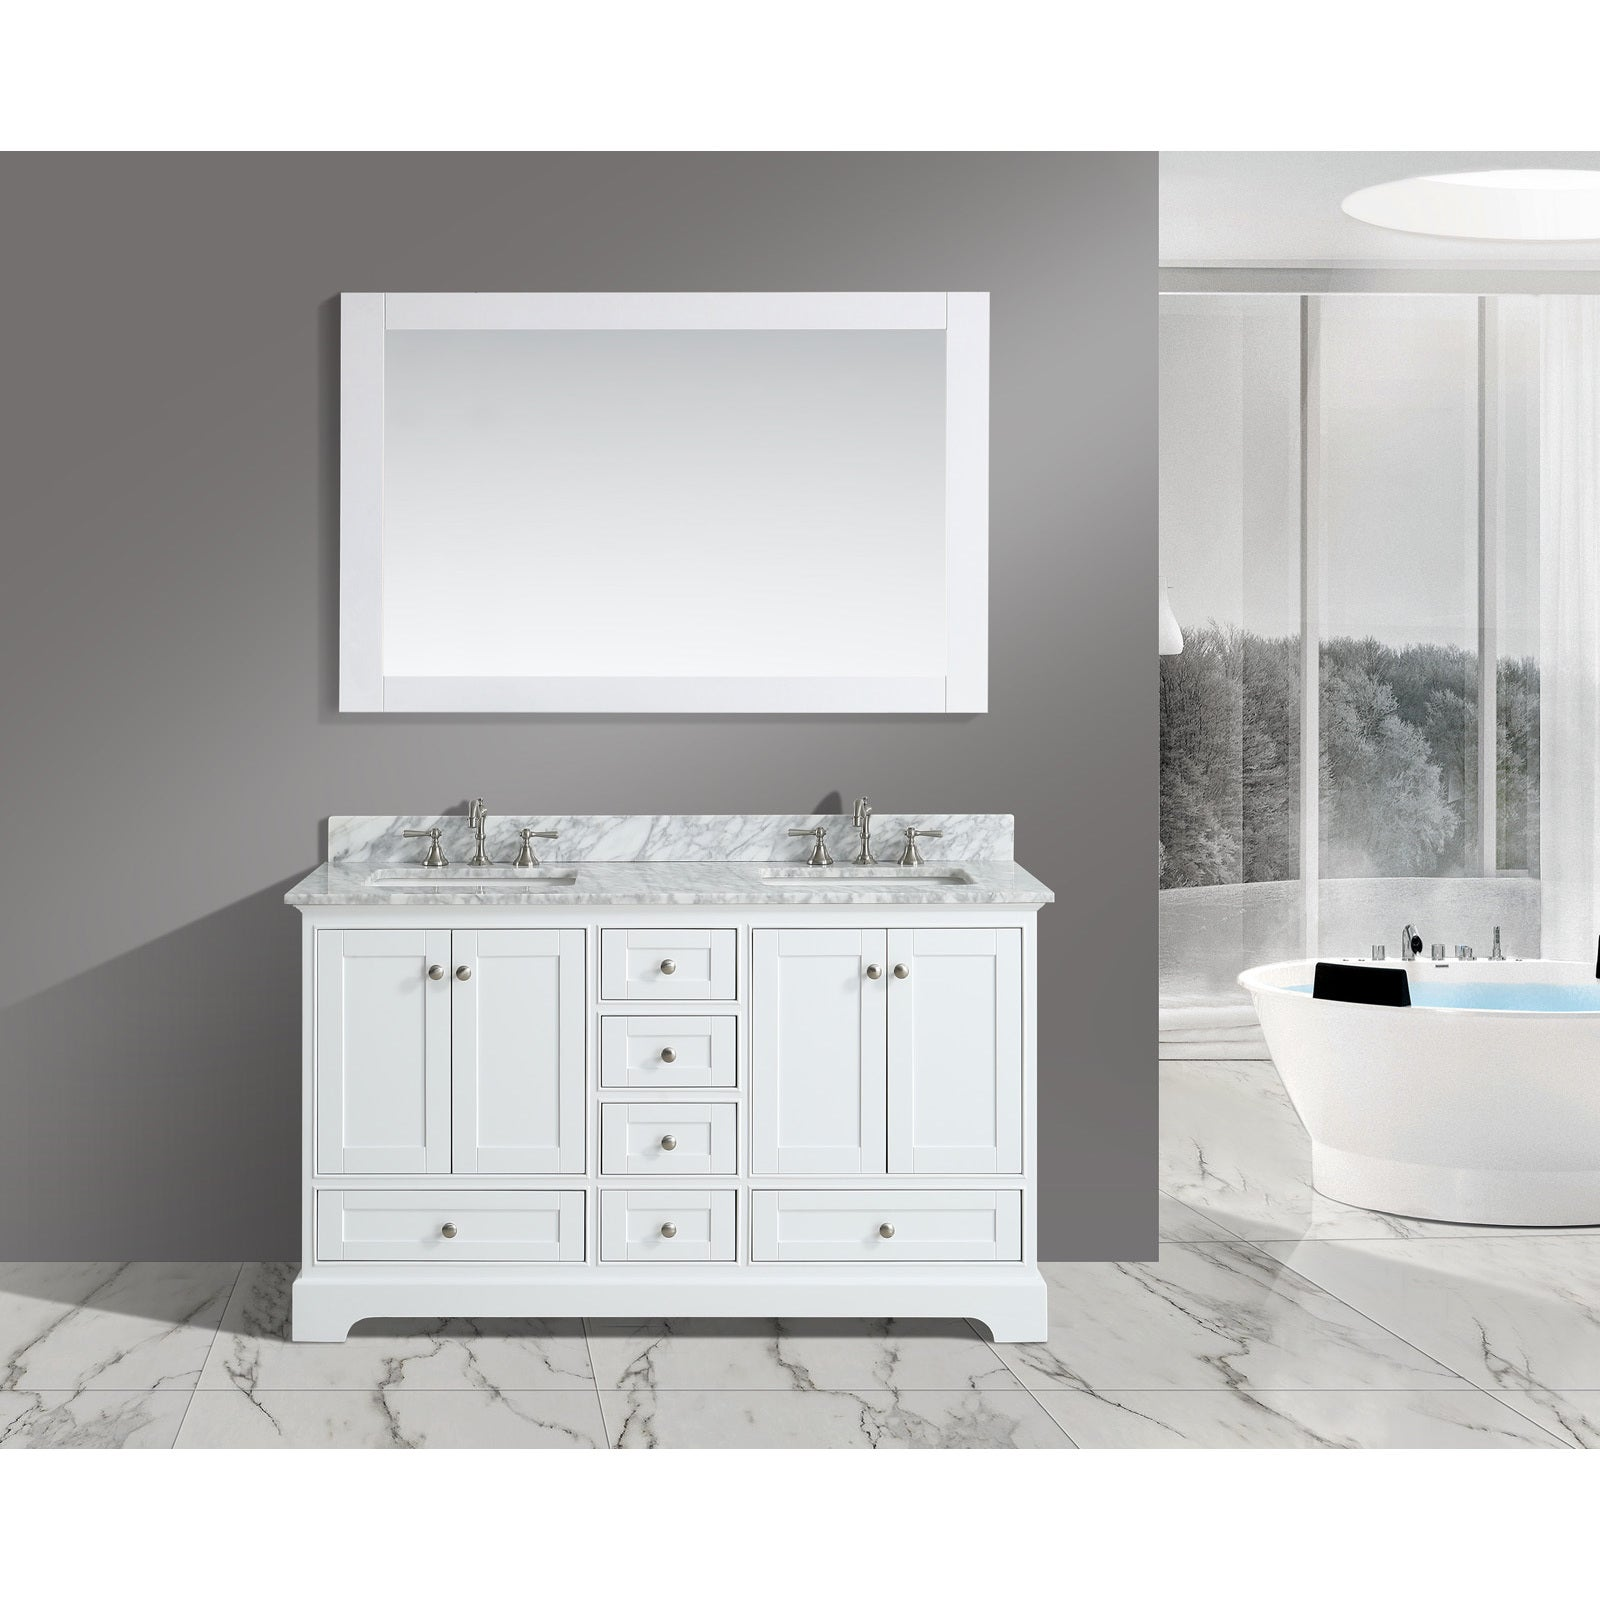 Urban Furnishing Jocelyn White Italian Carrara Marble 60 Inch Bathroom Sink  Vanity Set (3